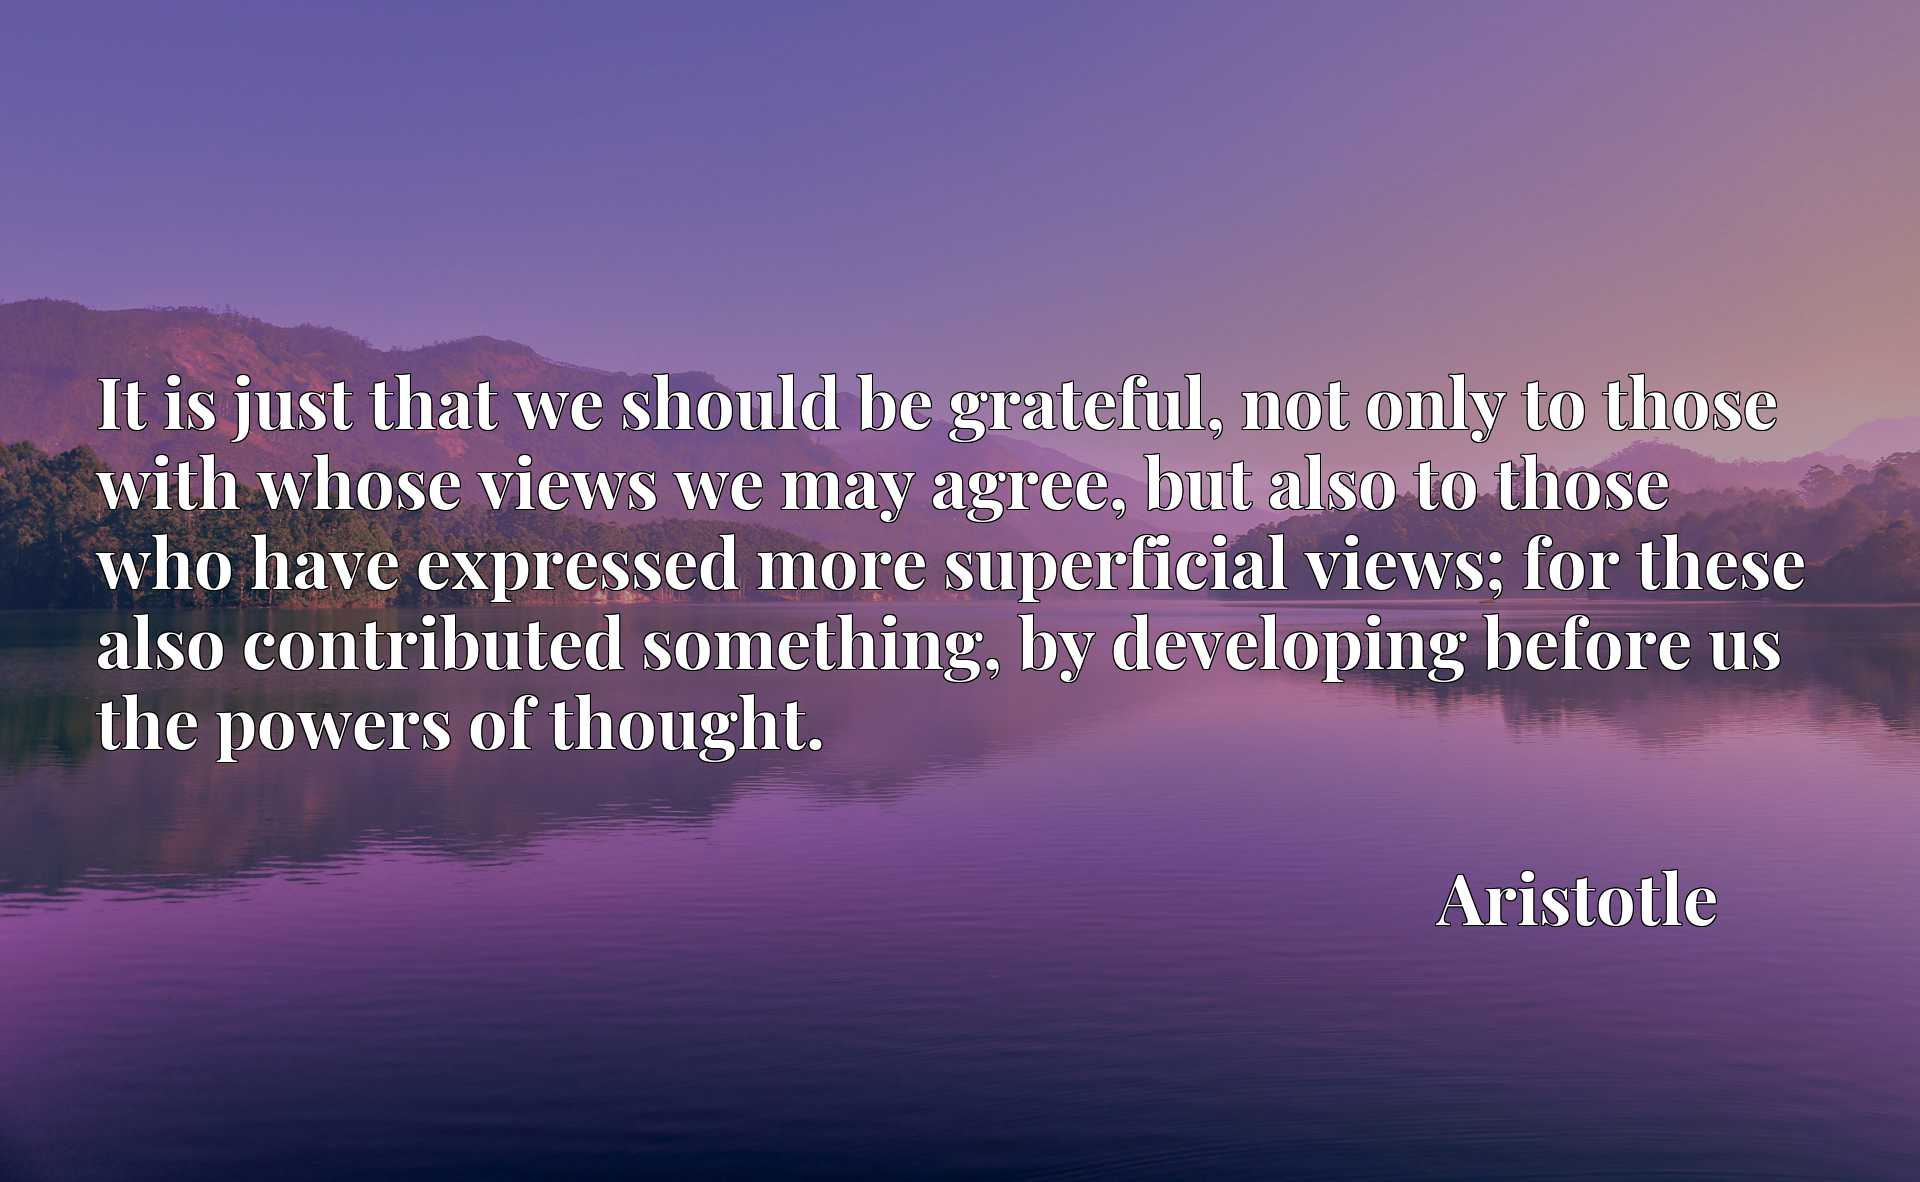 It is just that we should be grateful, not only to those with whose views we may agree, but also to those who have expressed more superficial views; for these also contributed something, by developing before us the powers of thought.